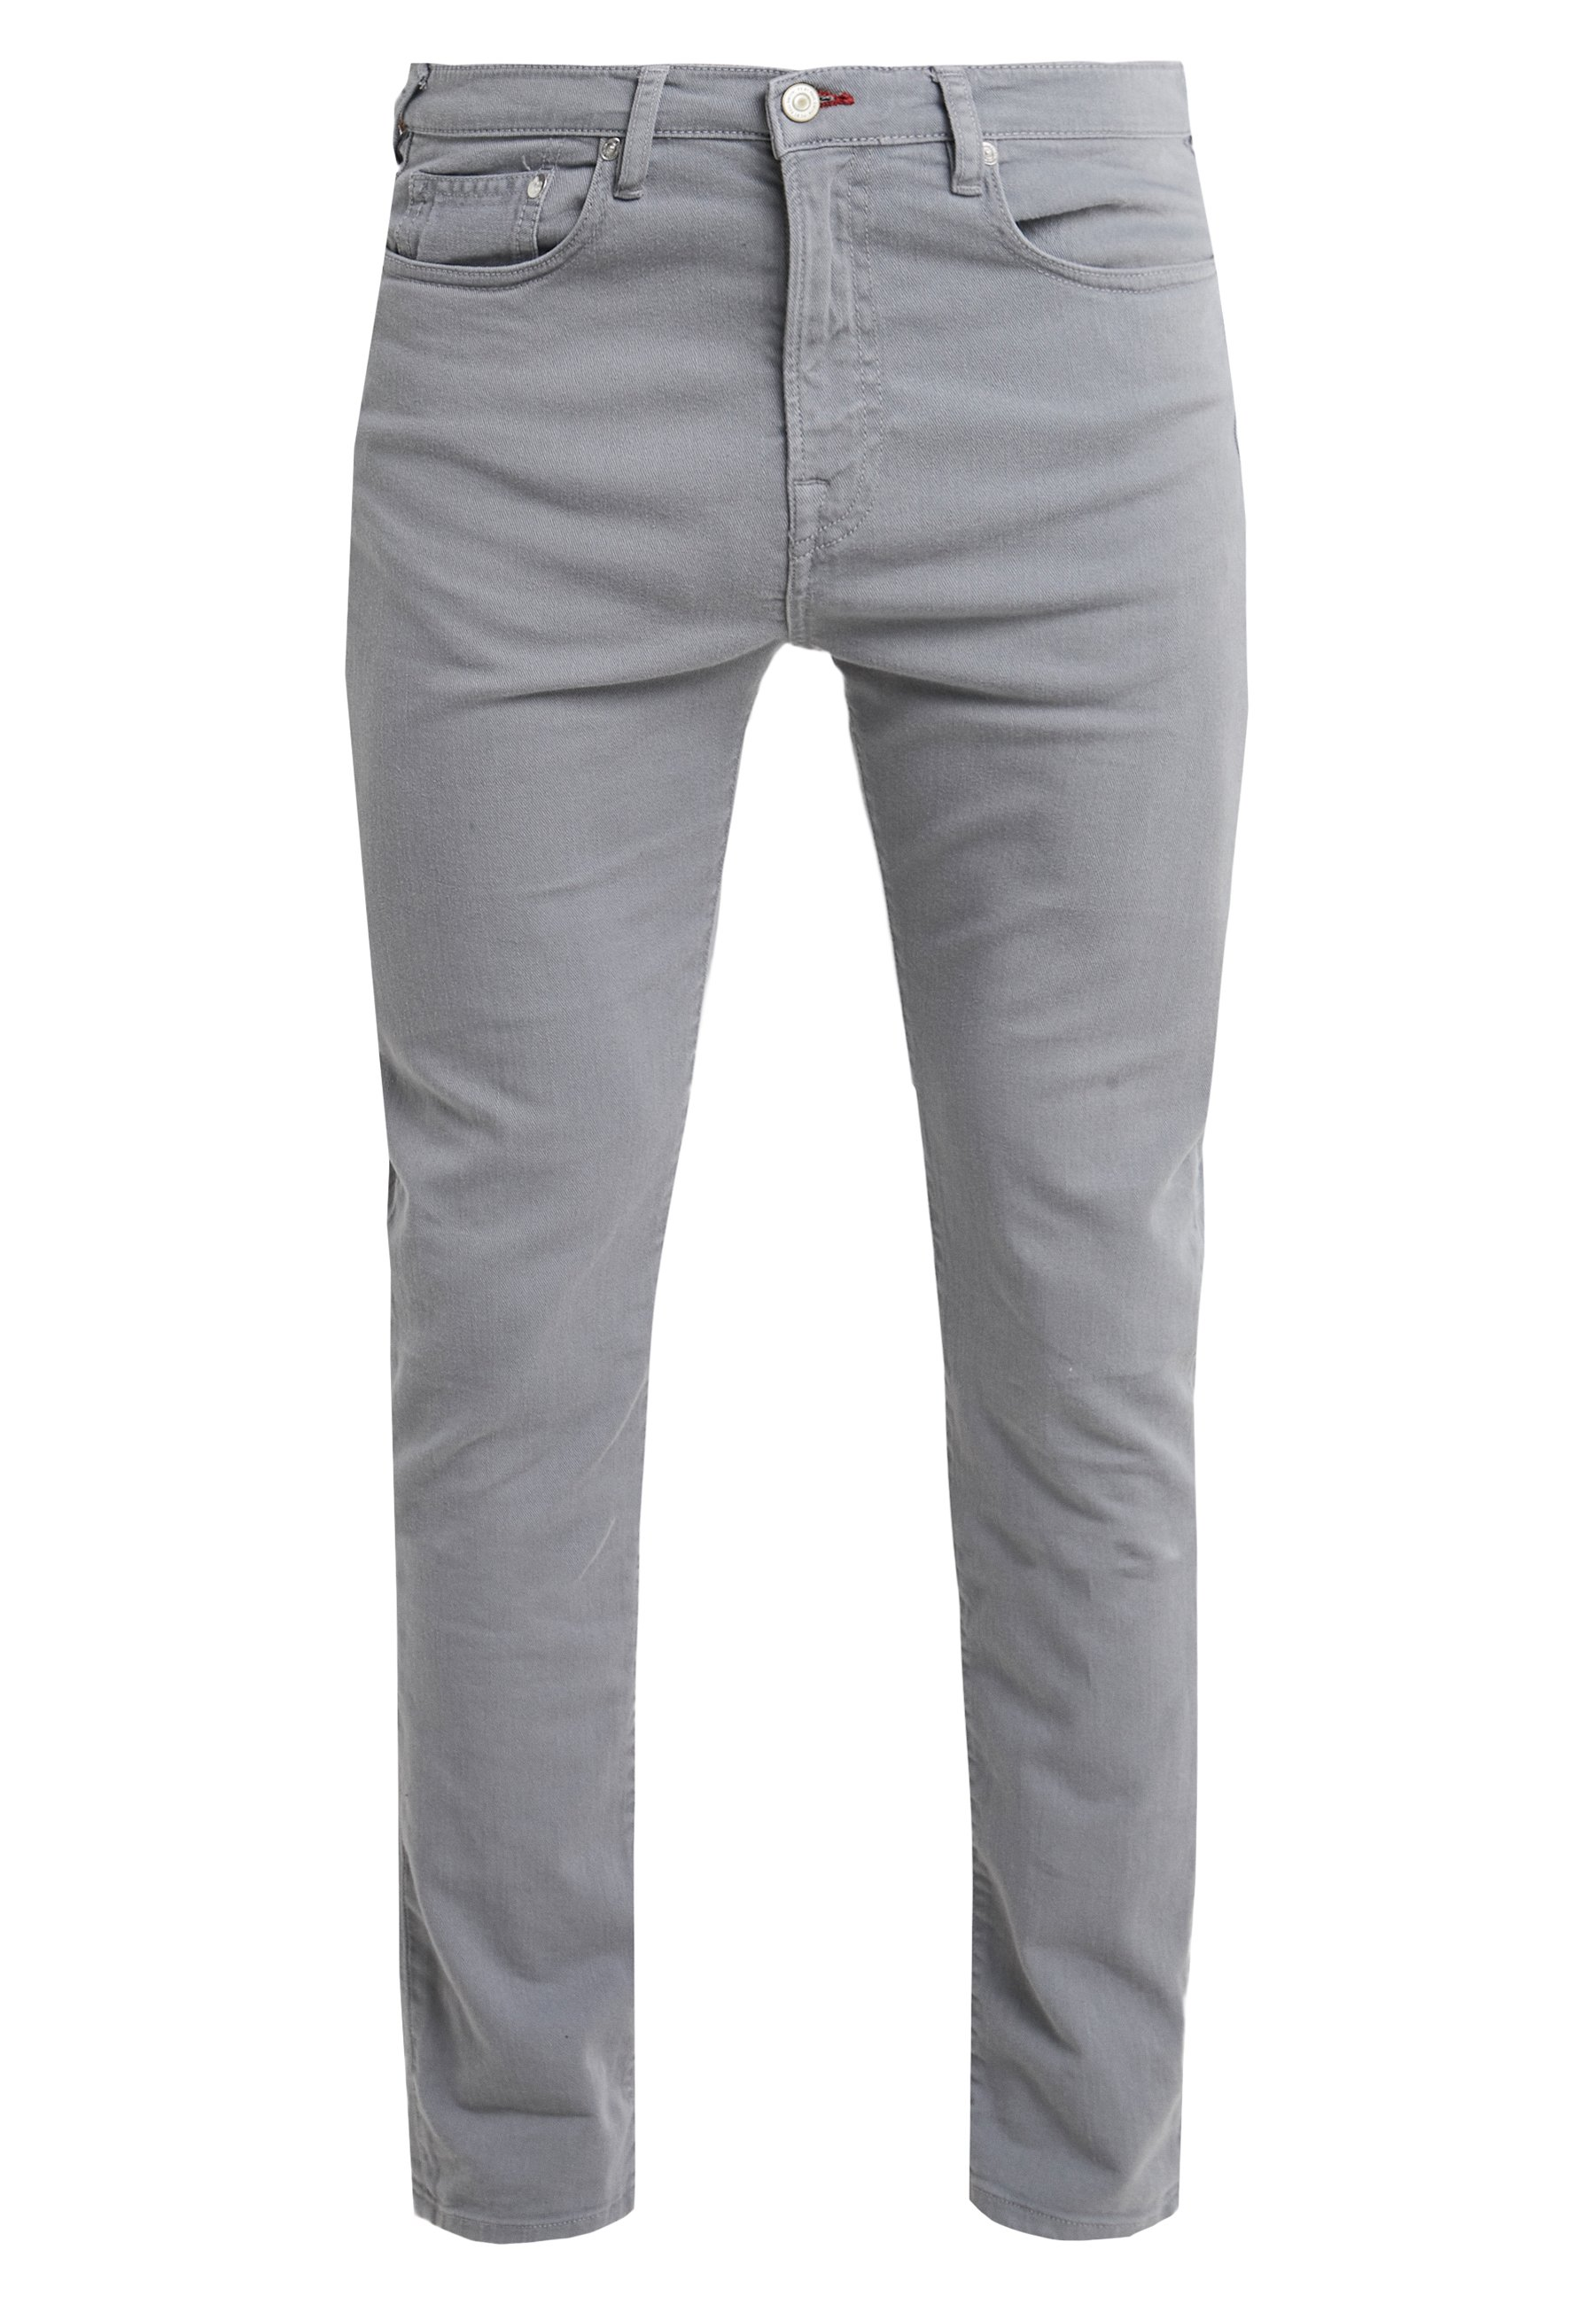 Ps Paul Smith Jeans Slim Fit - Grey